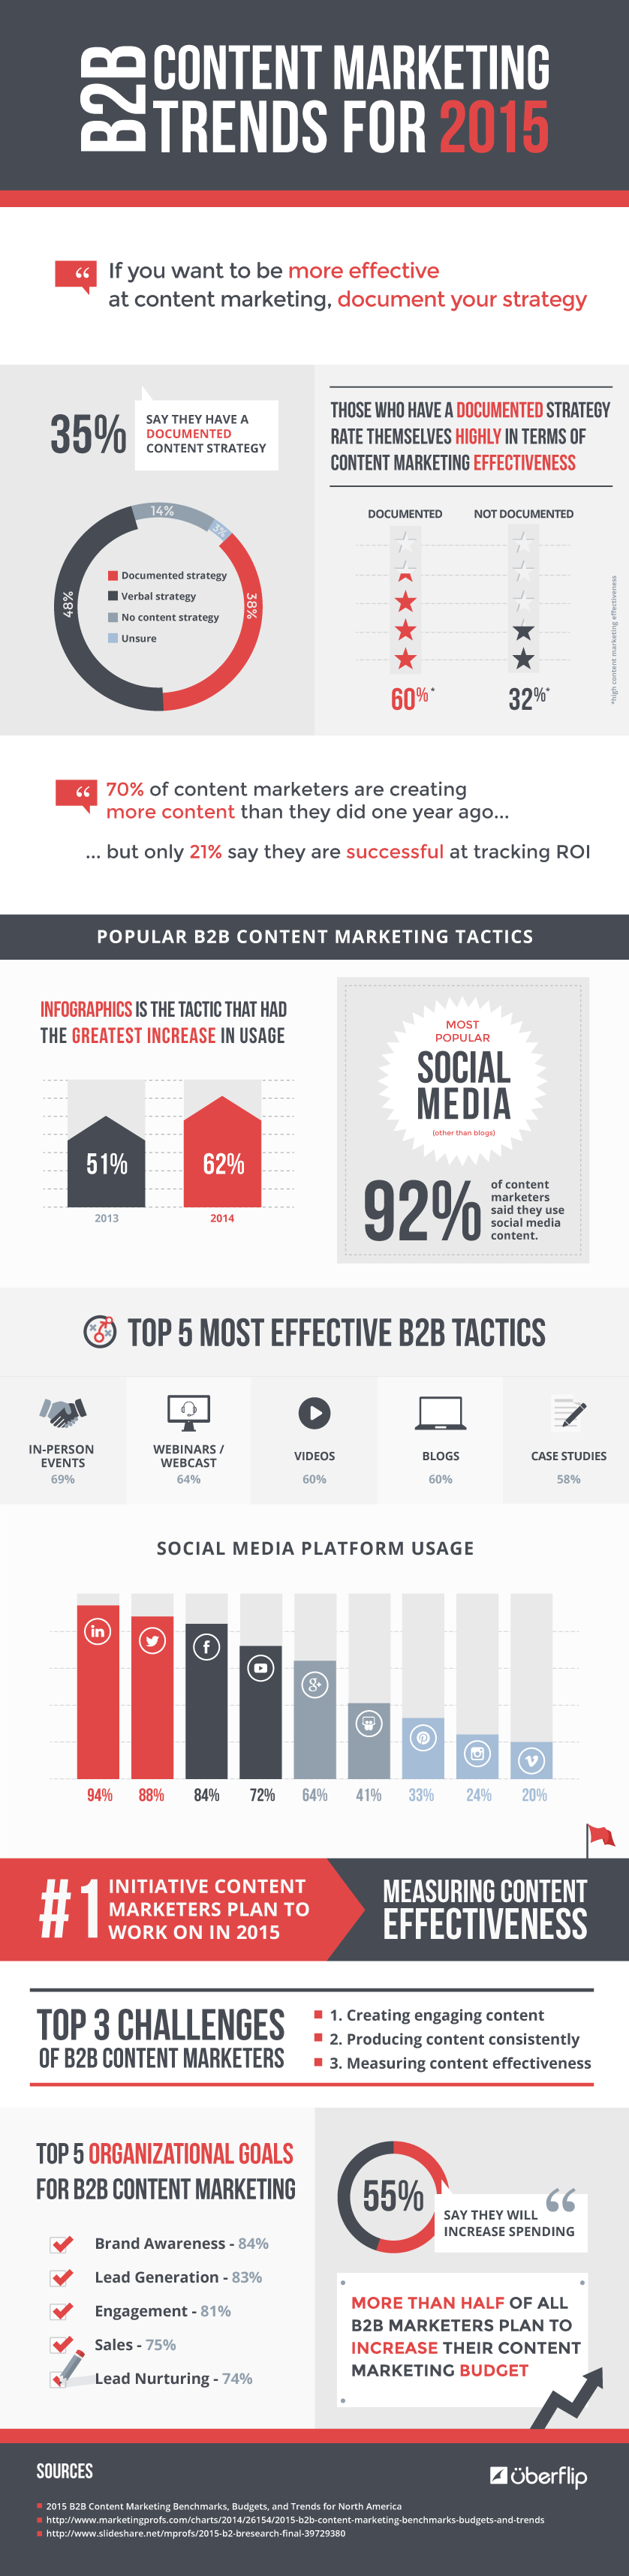 b2b-content-marketing-trends-201518_png18